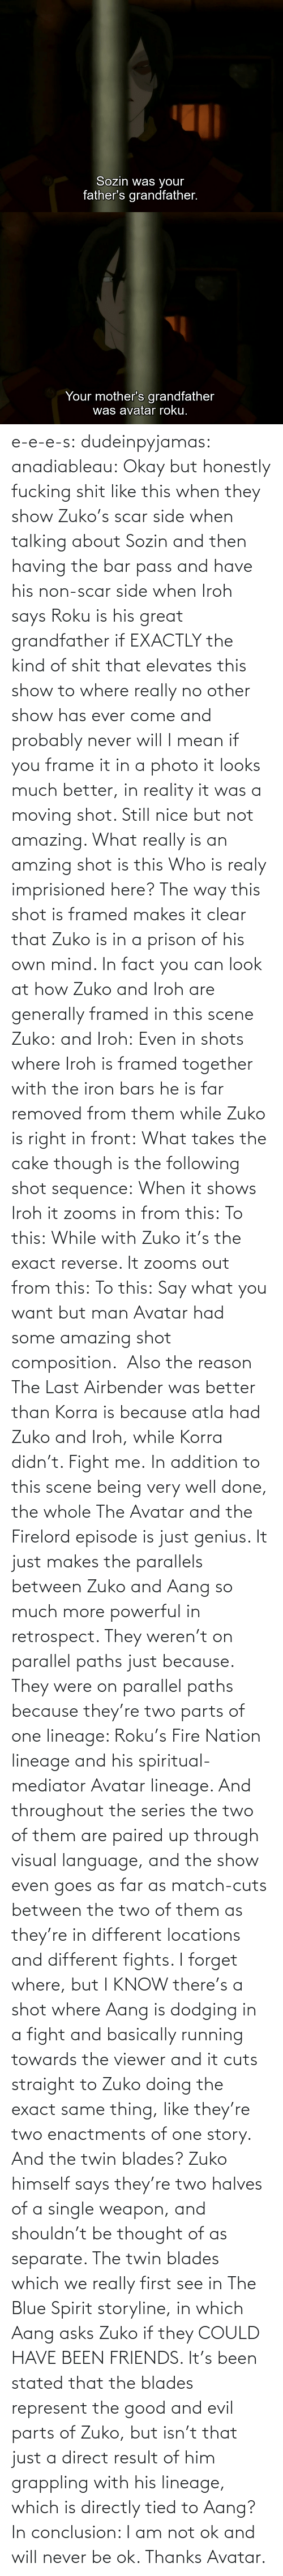 Look At: e-e-e-s: dudeinpyjamas:   anadiableau: Okay but honestly fucking shit like this when they show Zuko's scar side when talking about Sozin and then having the bar pass and have his non-scar side when Iroh says Roku is his great grandfather if EXACTLY the kind of shit that elevates this show to where really no other show has ever come and probably never will I mean if you frame it in a photo it looks much better, in reality it was a moving shot. Still nice but not amazing. What really is an amzing shot is this Who is realy imprisioned here? The way this shot is framed makes it clear that Zuko is in a prison of his own mind. In fact you can look at how Zuko and Iroh are generally framed in this scene Zuko: and Iroh: Even in shots where Iroh is framed together with the iron bars he is far removed from them while Zuko is right in front:  What takes the cake though is the following shot sequence: When it shows Iroh it zooms in from this: To this: While with Zuko it's the exact reverse. It zooms out from this: To this: Say what you want but man Avatar had some amazing shot composition.   Also the reason The Last Airbender was better than Korra is because atla had Zuko and Iroh, while Korra didn't. Fight me.    In addition to this scene being very well done, the whole The Avatar and the Firelord episode is just genius.  It just makes the parallels between Zuko and Aang so much more powerful in retrospect.  They weren't on parallel paths just because.  They were on parallel paths because they're two parts of one lineage: Roku's Fire Nation lineage and his spiritual-mediator Avatar lineage.  And throughout the series the two of them are paired up through visual language, and the show even goes as far as match-cuts between the two of them as they're in different locations and different fights.  I forget where, but I KNOW there's a shot where Aang is dodging in a fight and basically running towards the viewer and it cuts straight to Zuko doing the exact same thing, like they're two enactments of one story.   And the twin blades?  Zuko himself says they're two halves of a single weapon, and shouldn't be thought of as separate.  The twin blades which we really first see in The Blue Spirit storyline, in which Aang asks Zuko if they COULD HAVE BEEN FRIENDS.  It's been stated that the blades represent the good and evil parts of Zuko, but isn't that just a direct result of him grappling with his lineage, which is directly tied to Aang? In conclusion: I am not ok and will never be ok.  Thanks Avatar.